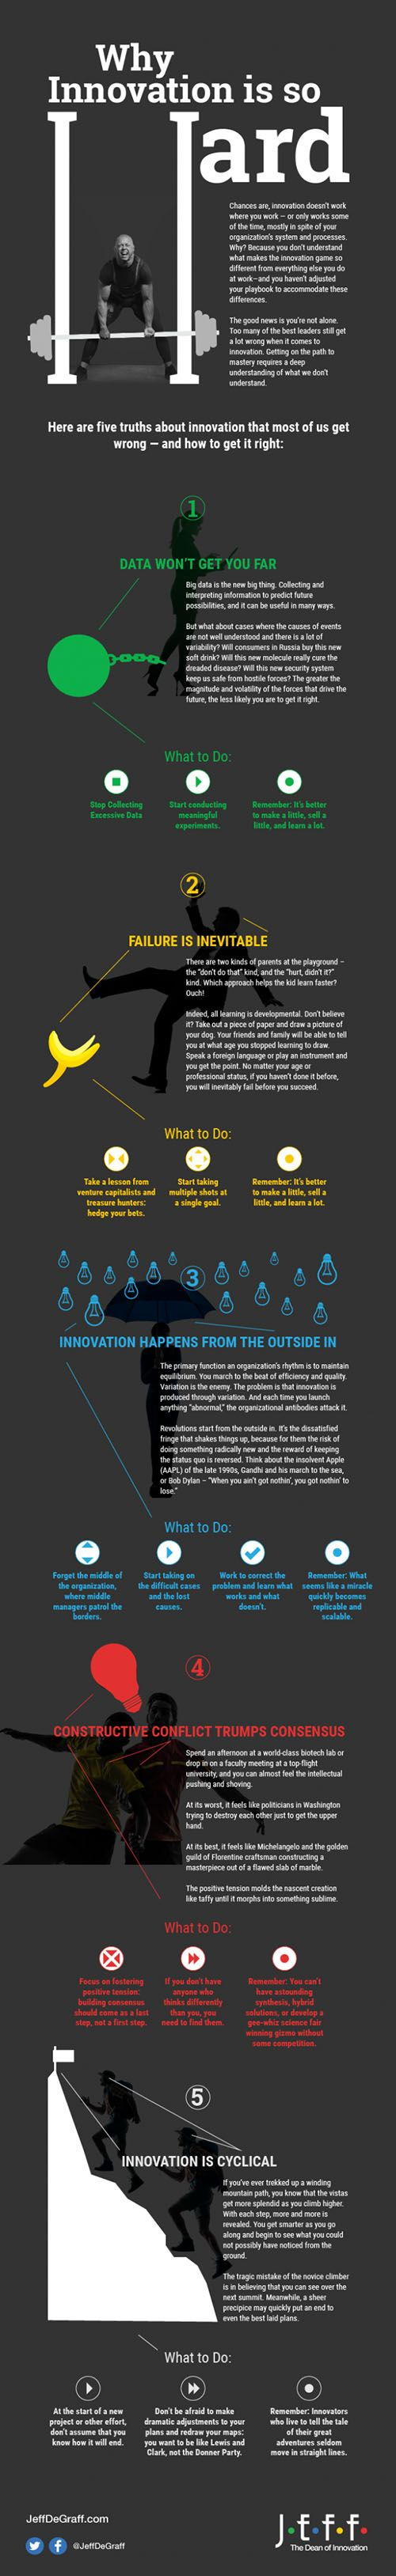 Everyone wants to make innovation an everyday, everywhere capability of their company. But, just about everyone, and leaders especially, don't know h